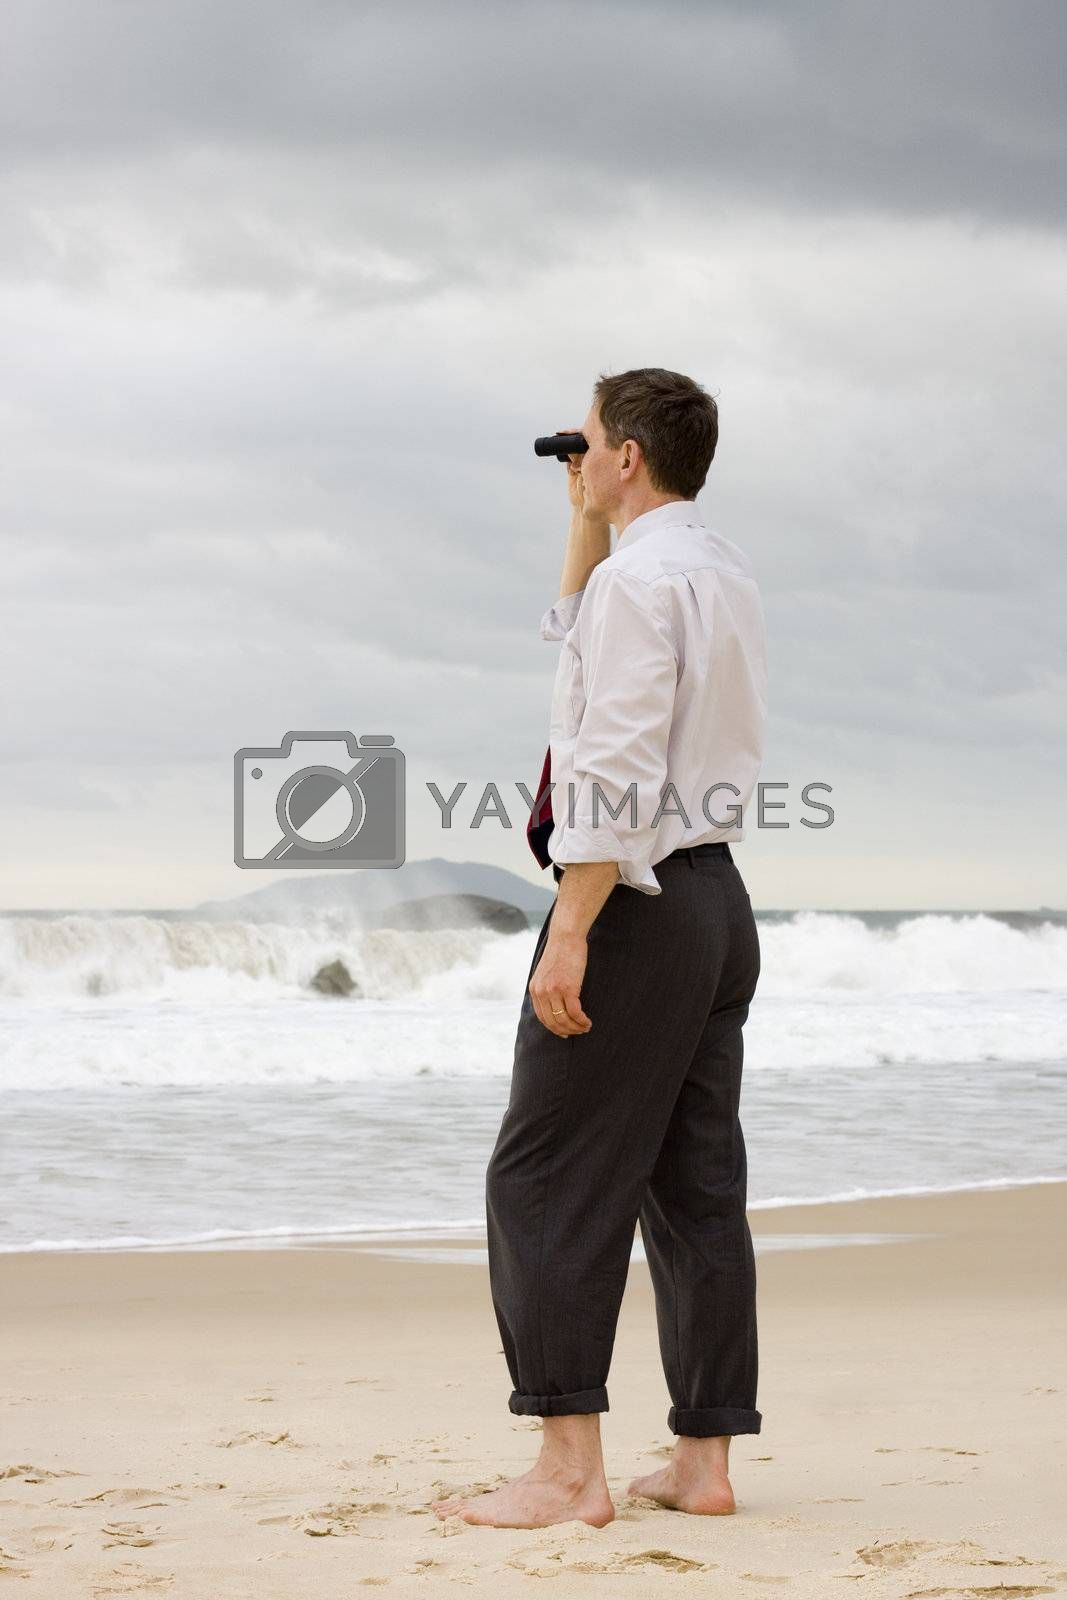 Businessman on a beach searching with binoculars by ArtmannWitte